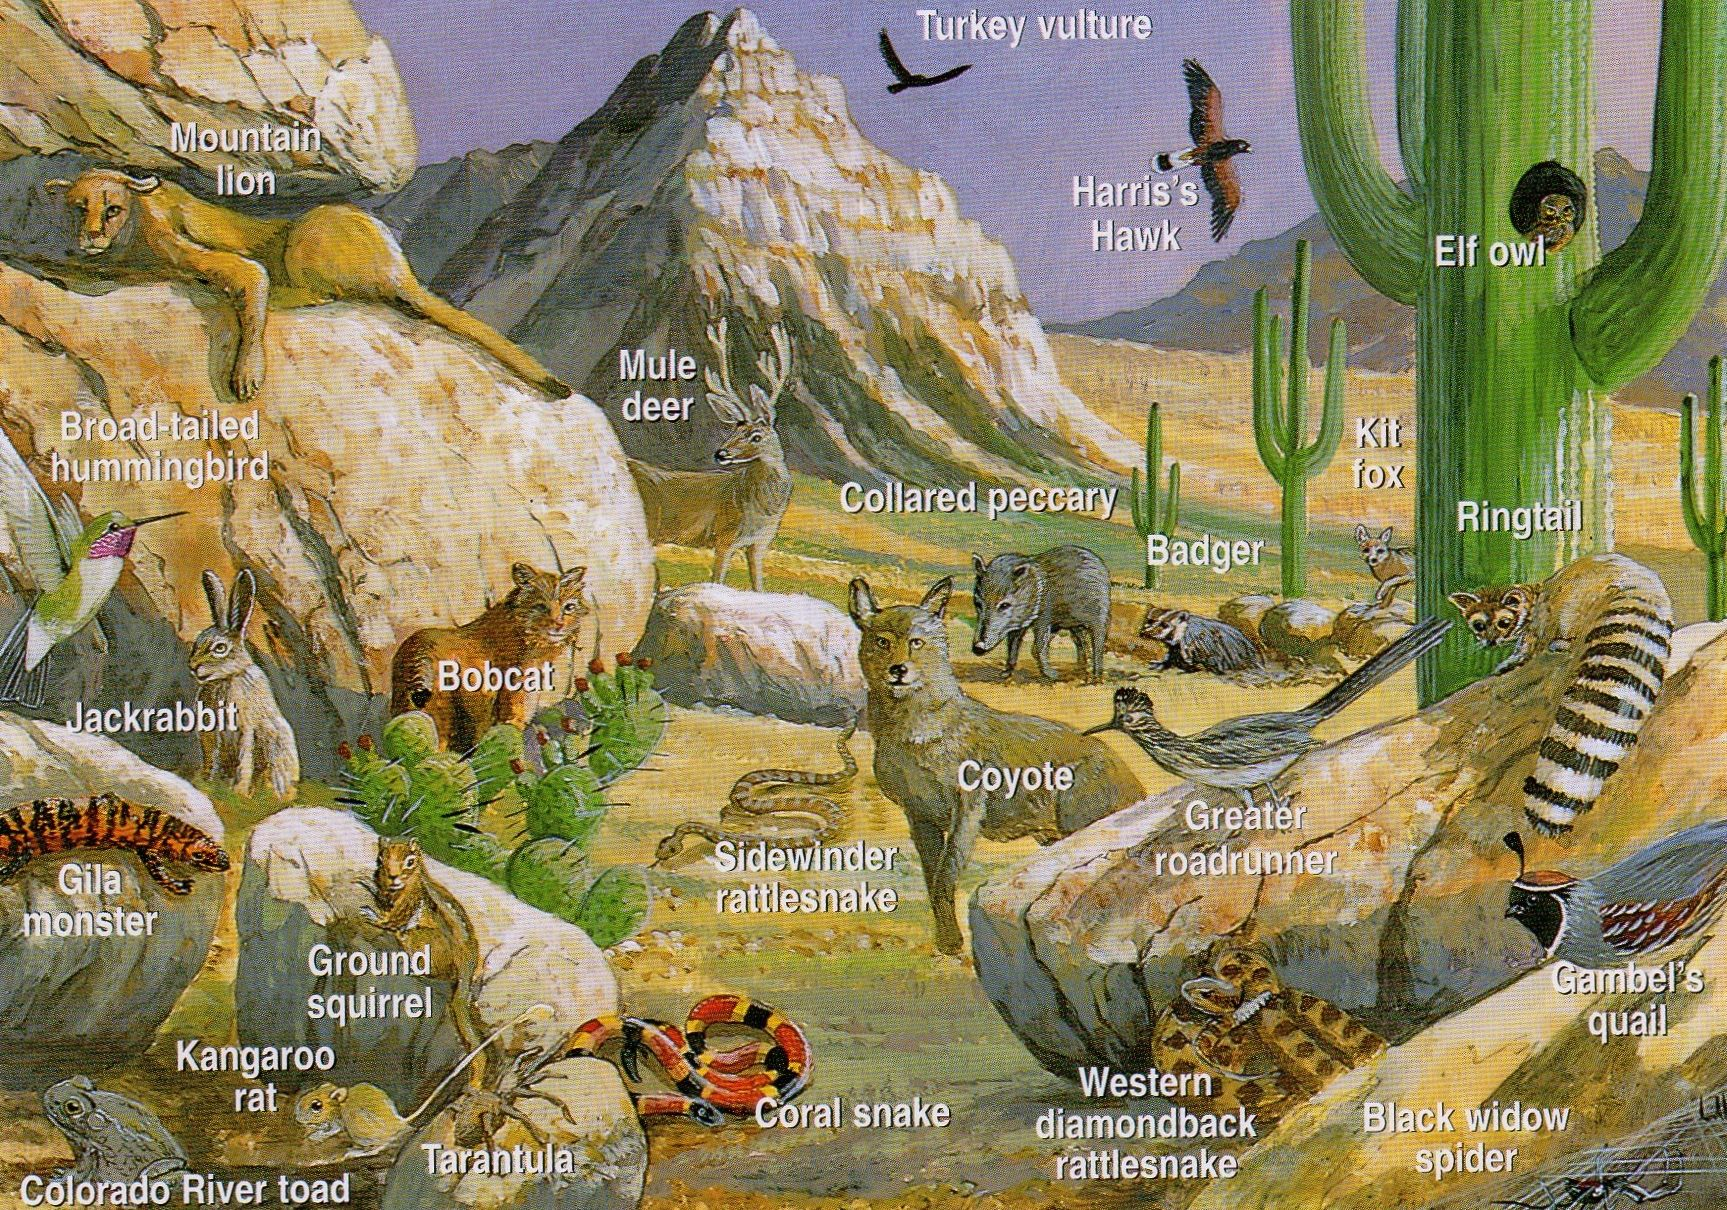 Pin By Sunny On First One Desert Animals Desert Biome Desert Ecosystem